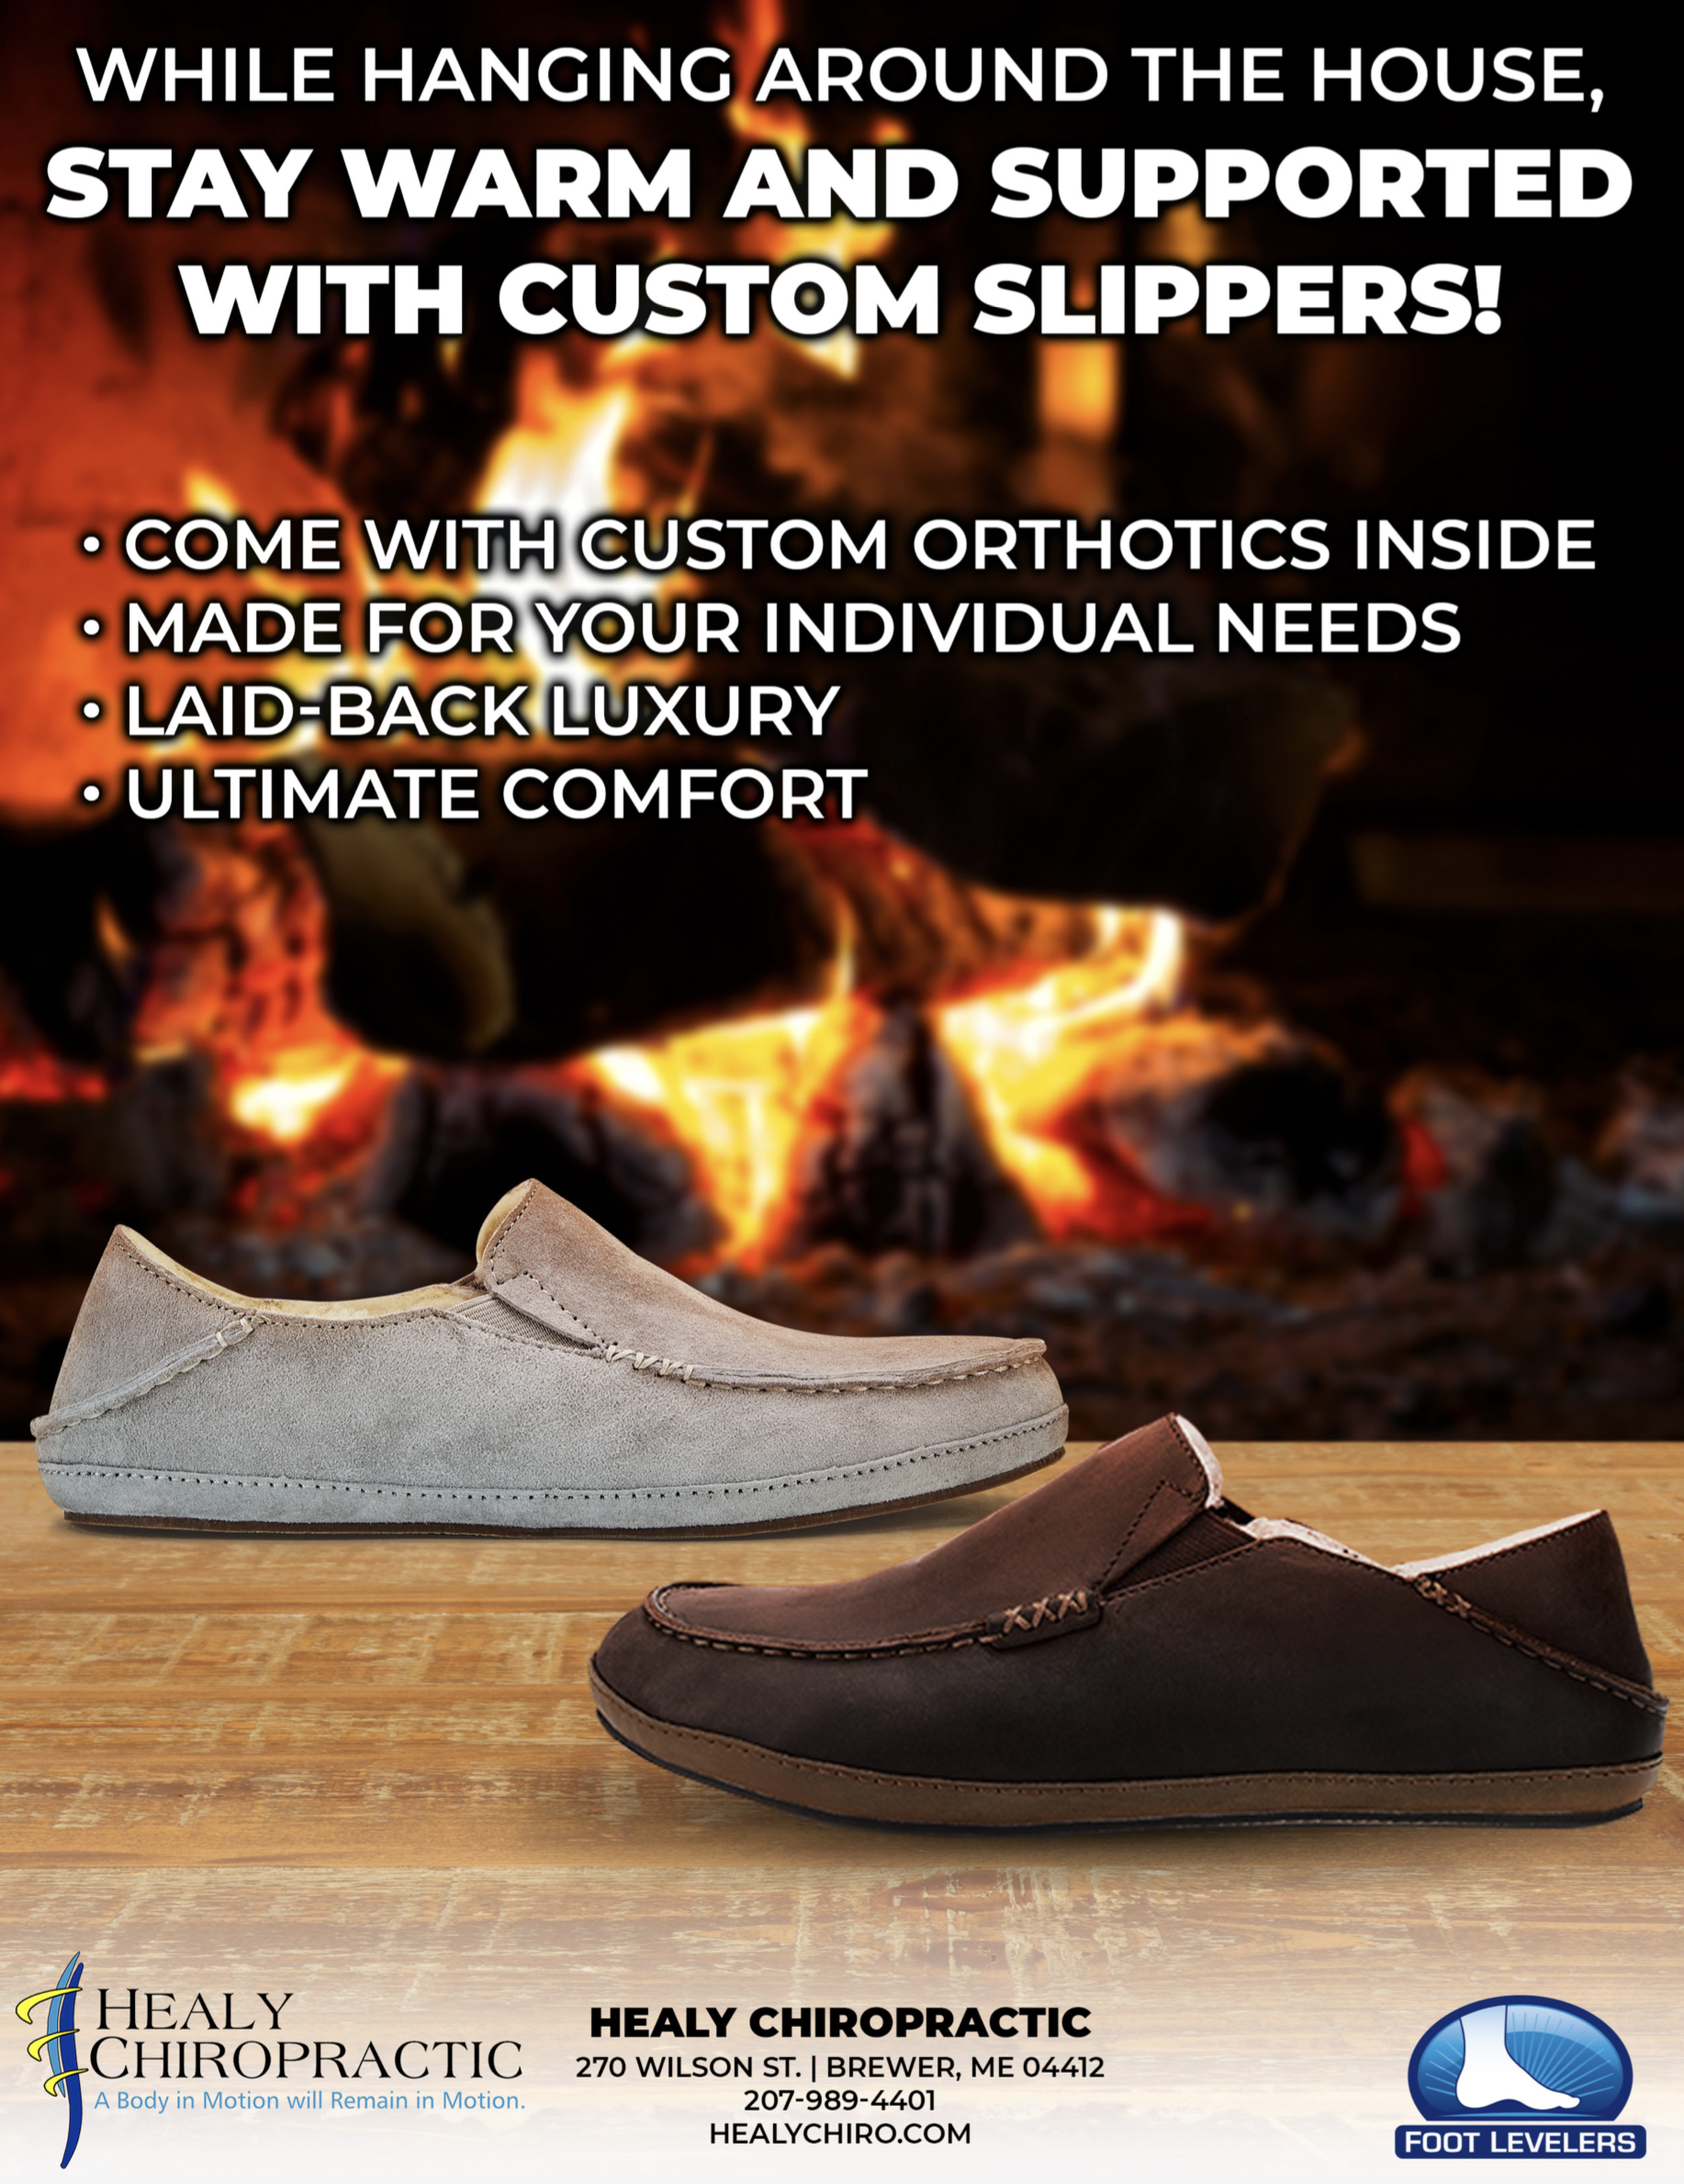 Custom Slippers